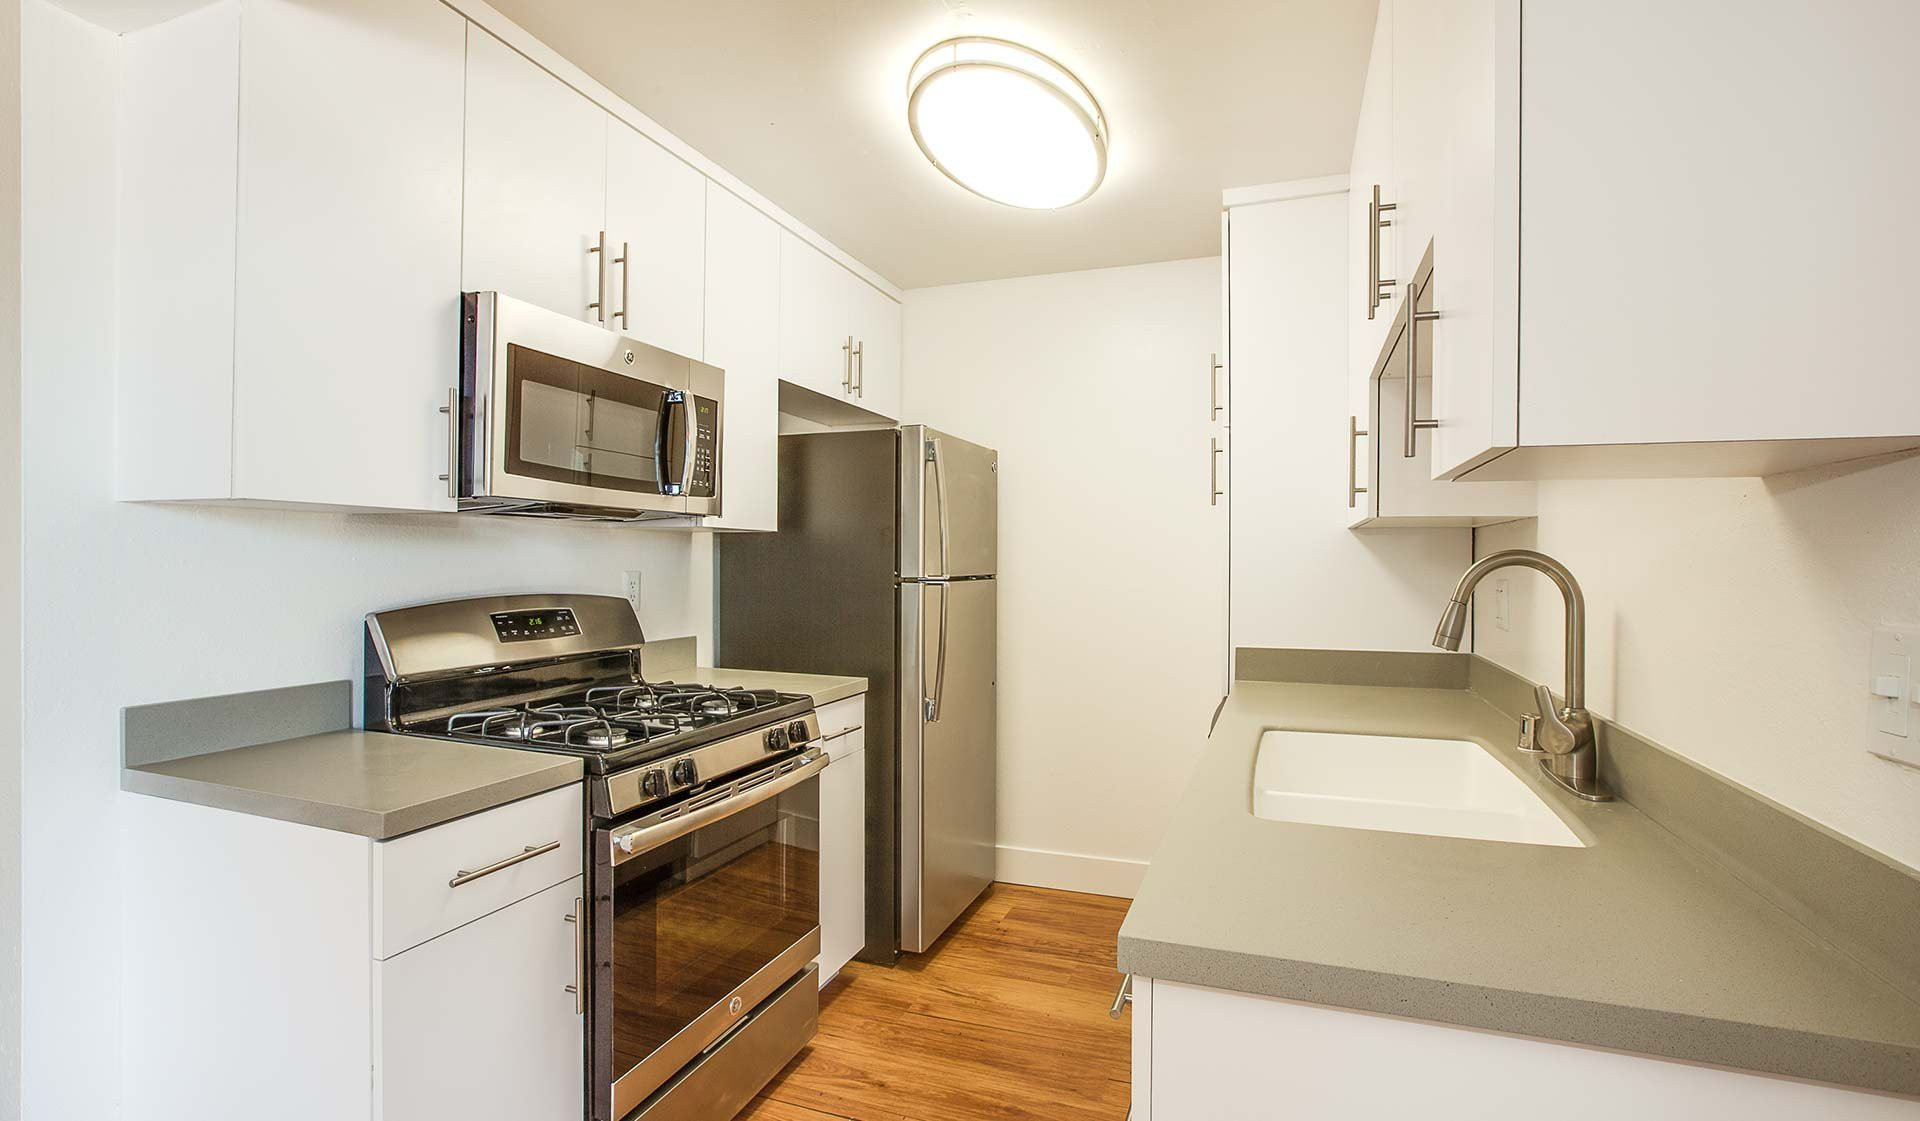 51 Apartments in Long Beach, CA (AVAIL now)